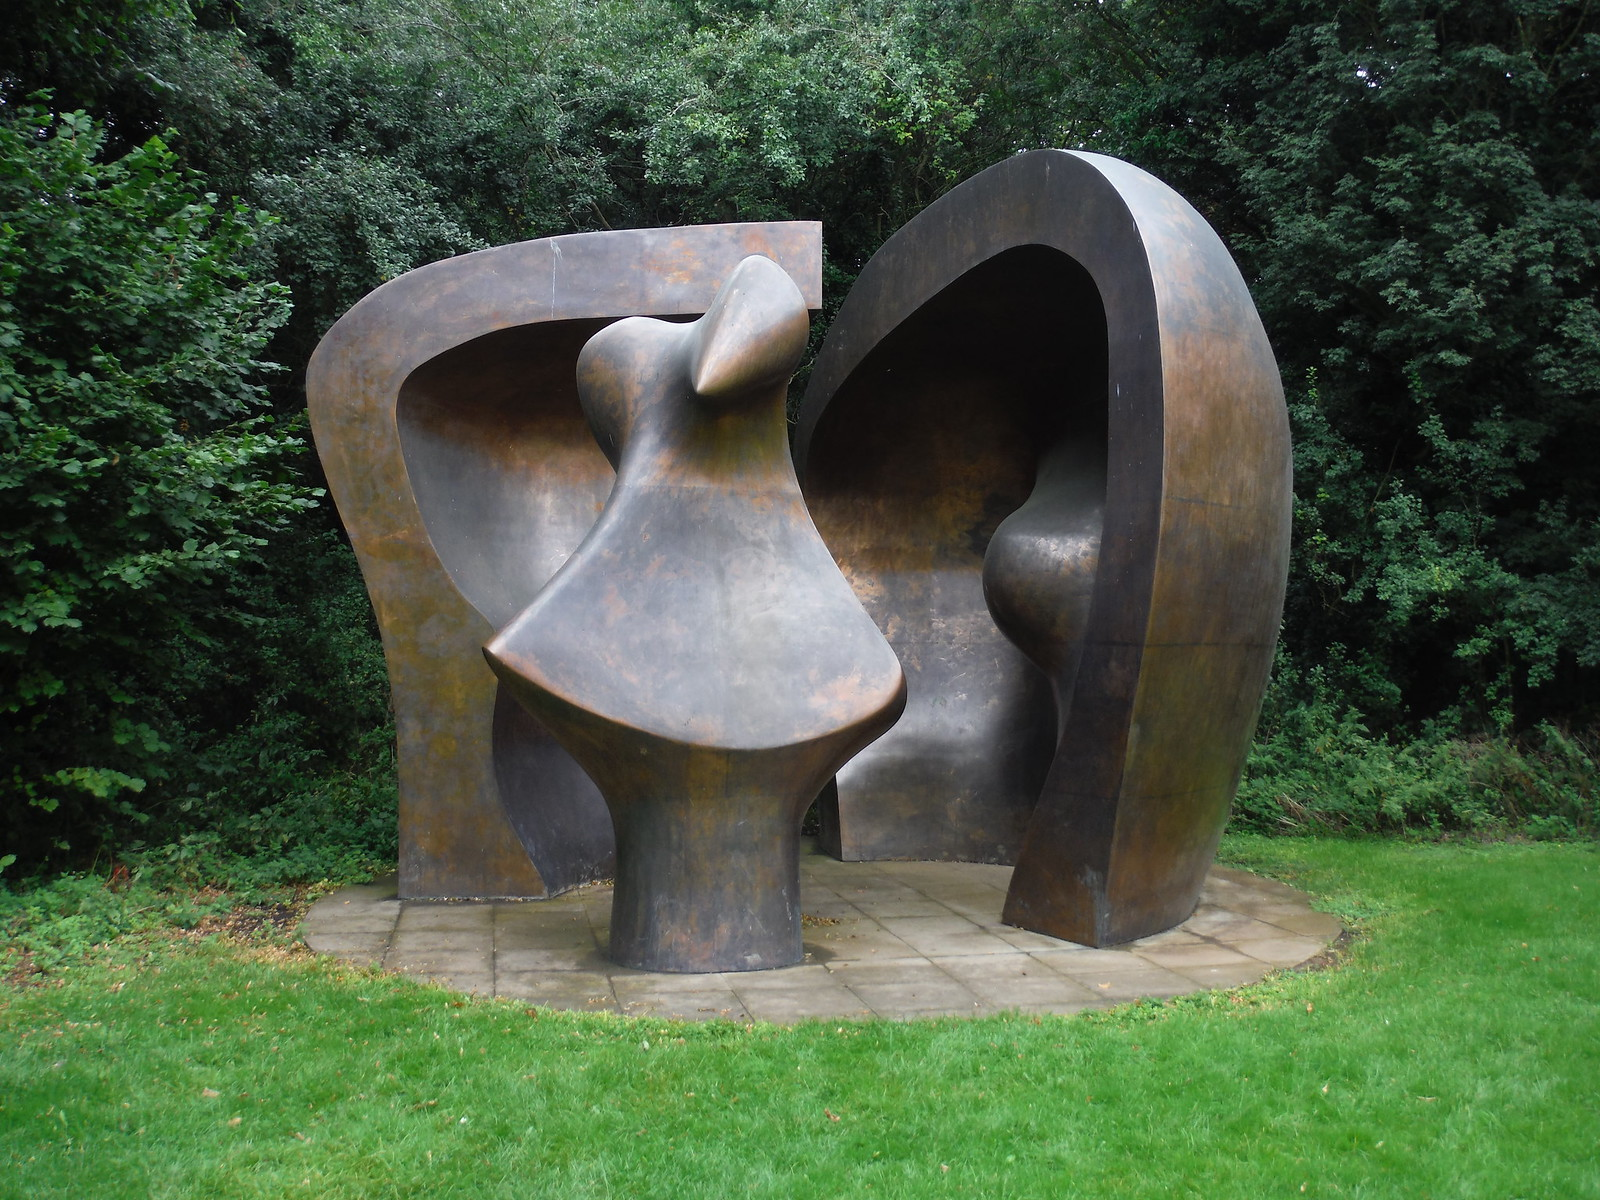 Large Figure in a Shelter (1985-86) SWC Walk 164 Roydon to Sawbridgeworth via Henry Moore Foundation